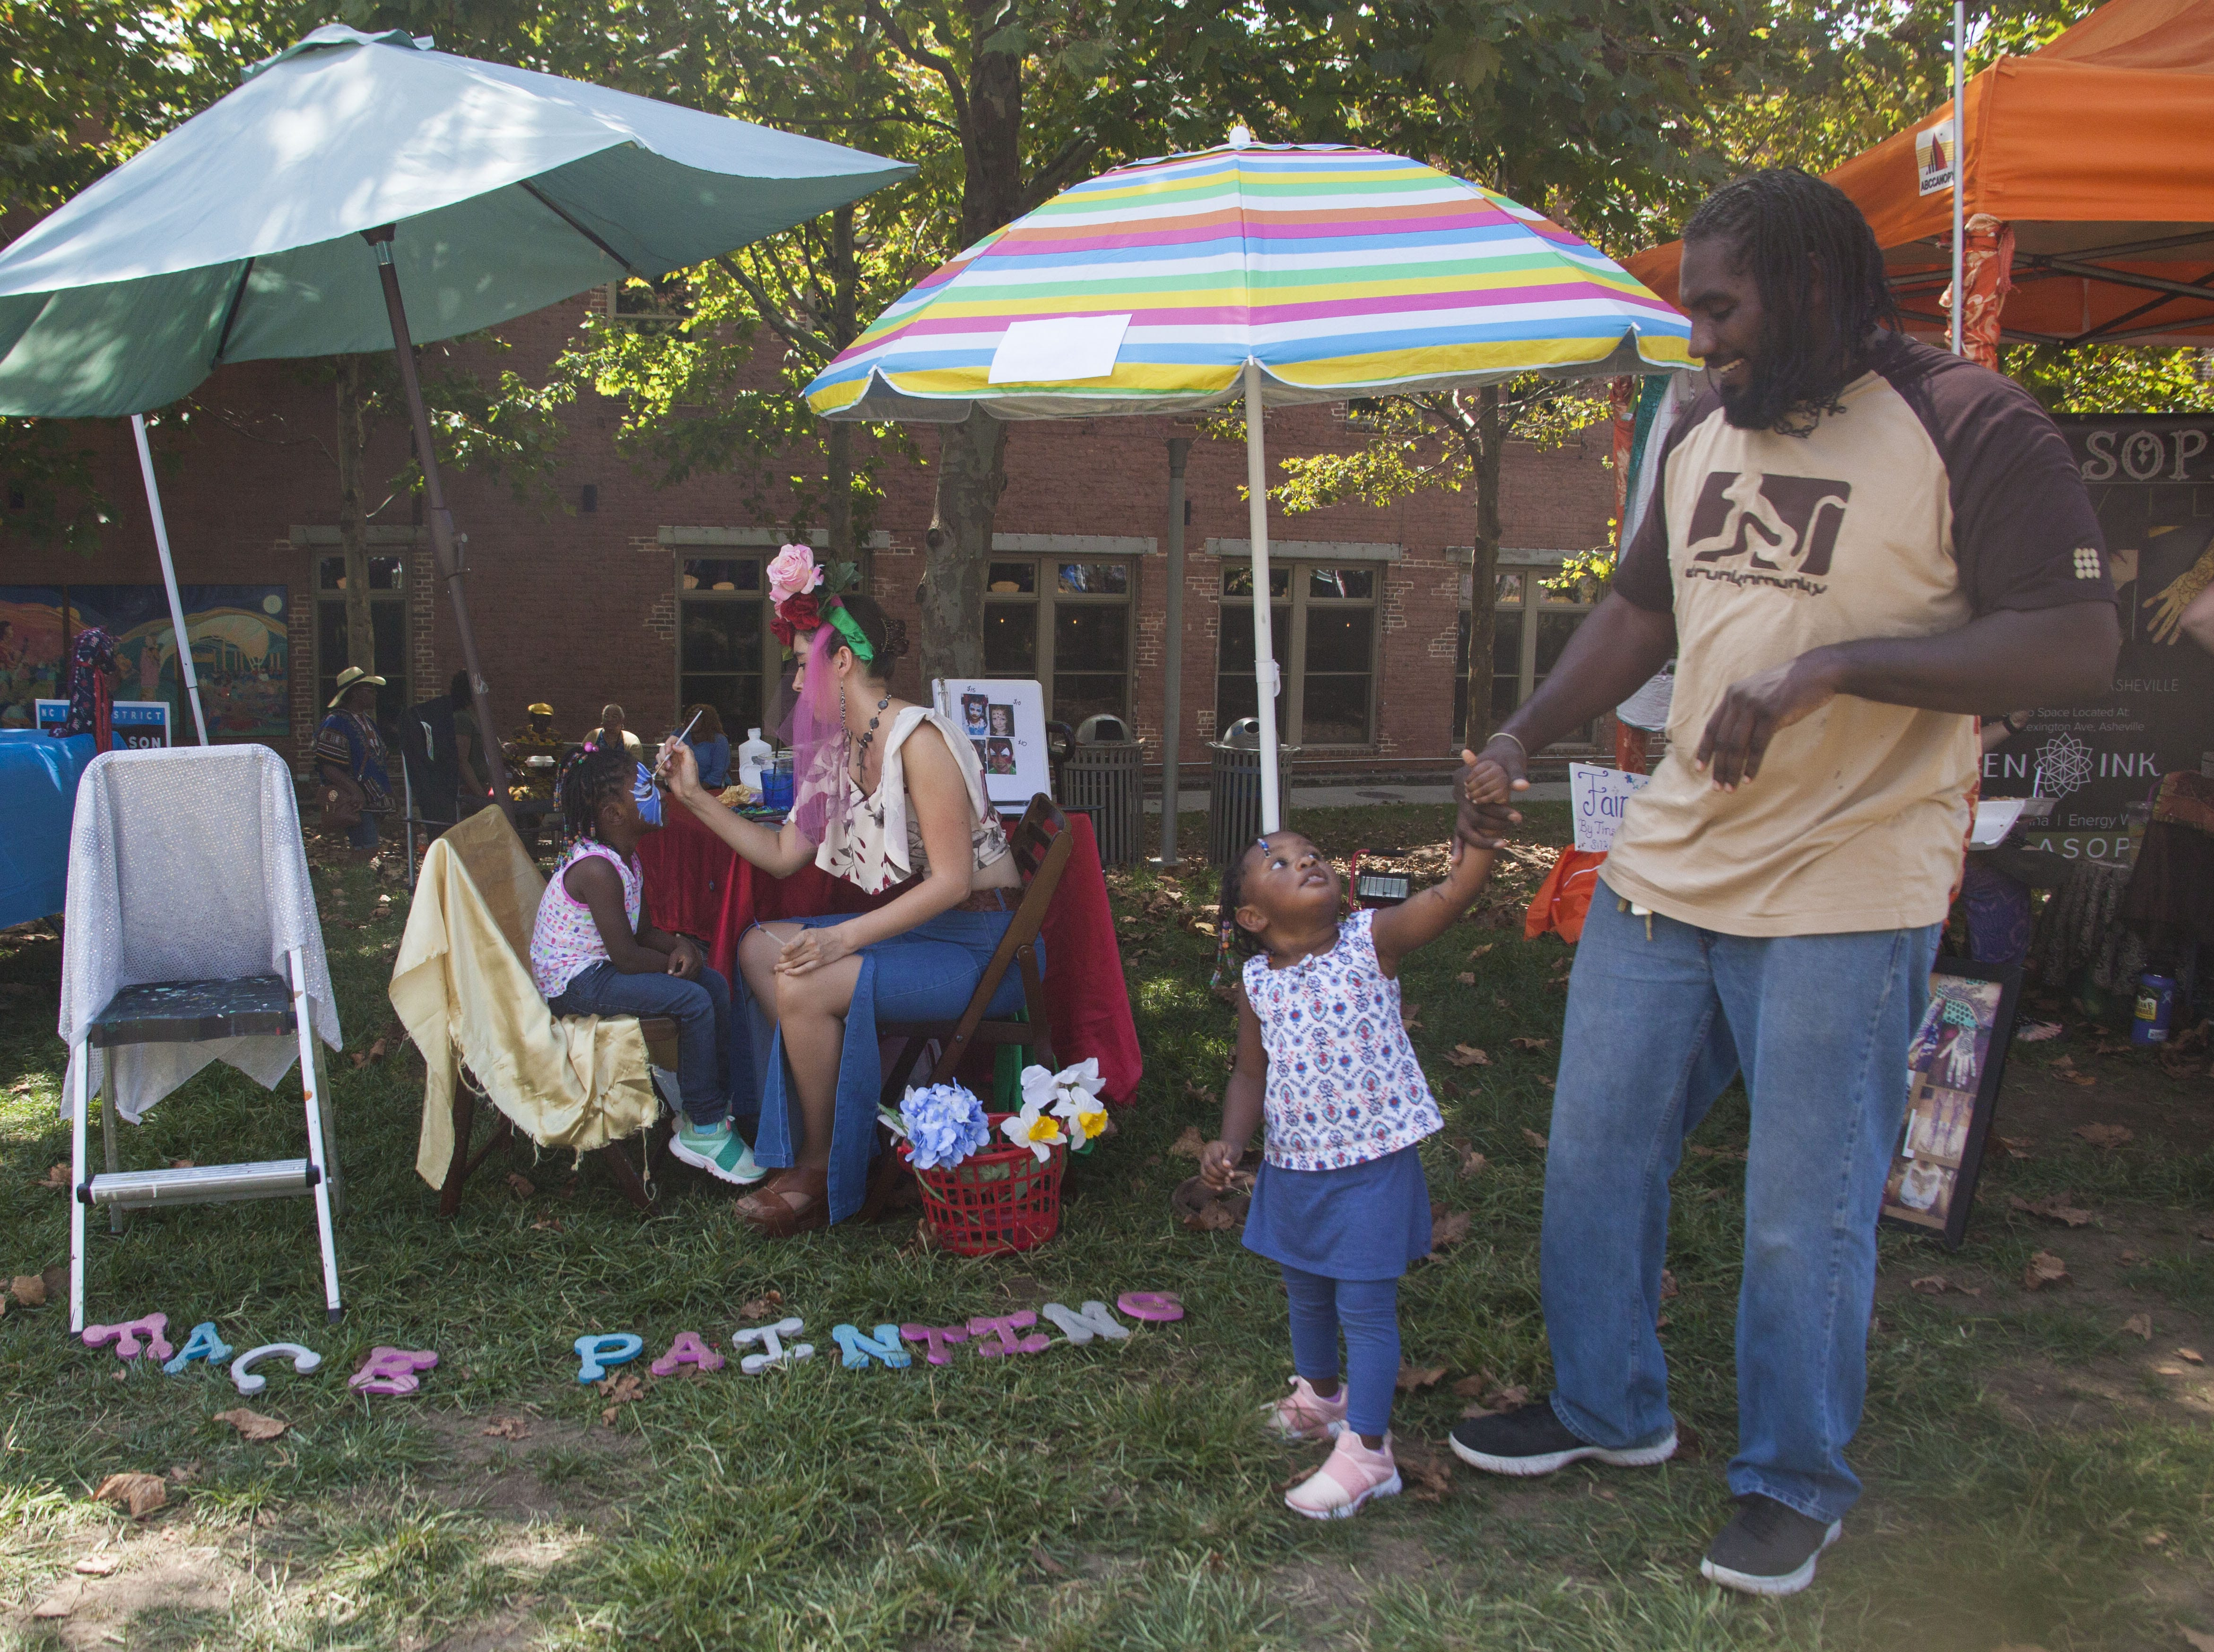 Charles and Penn pose beside the The Lady in Red Art face painting booth at the 2018 Goombay Festival at the Roger McGuire Green in Pack Square Park on Sept. 8, 2018.